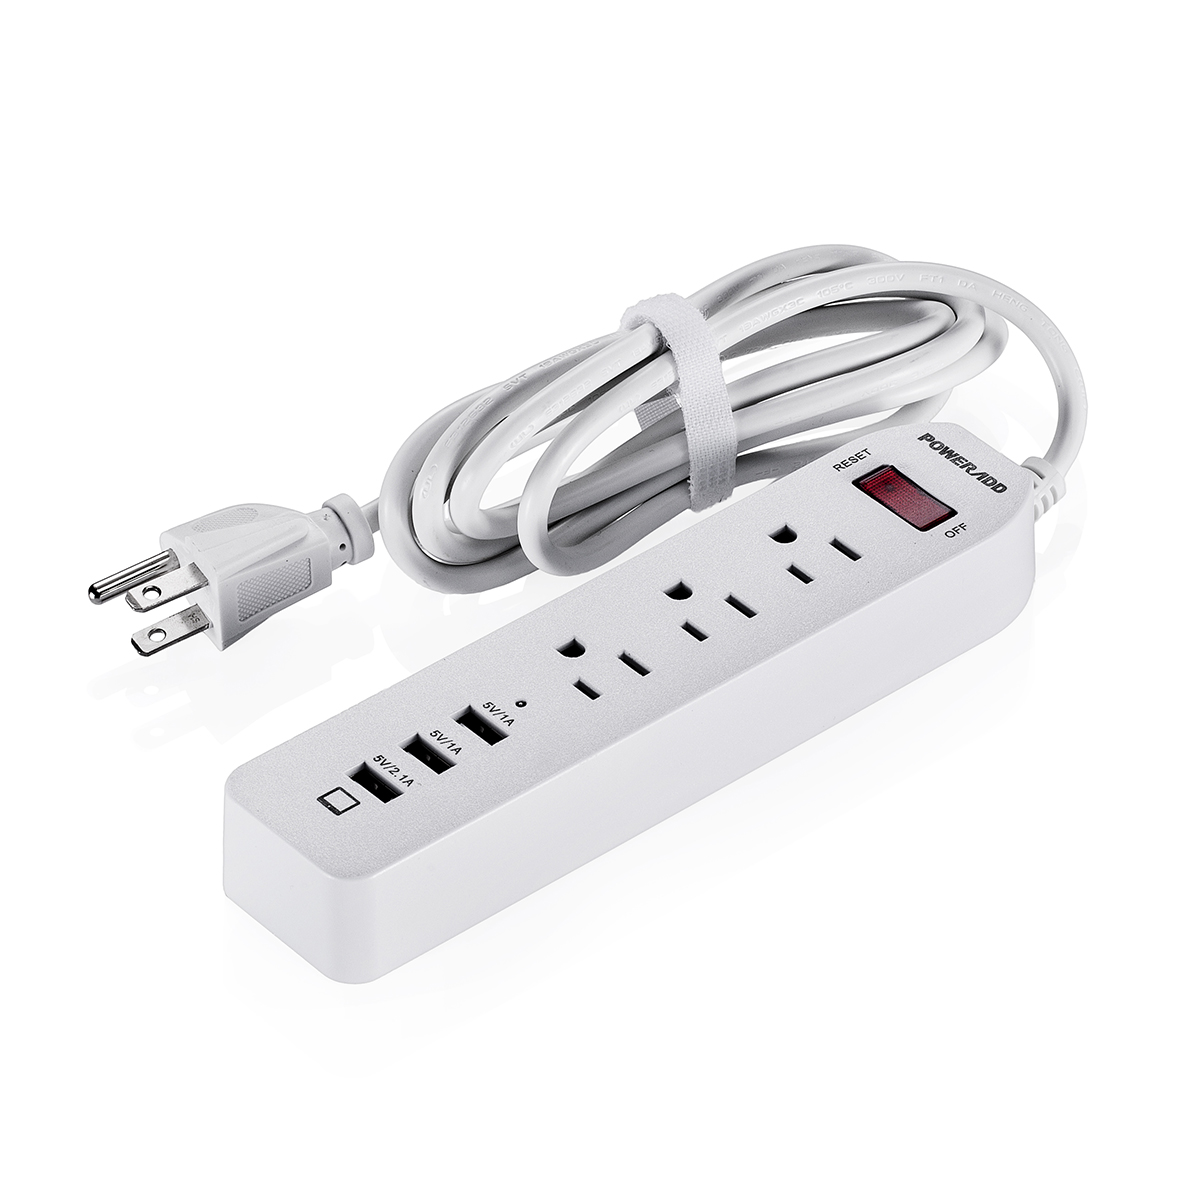 poweradd 3 outlets surge protector power strip socket with 3 usb charging port ebay. Black Bedroom Furniture Sets. Home Design Ideas